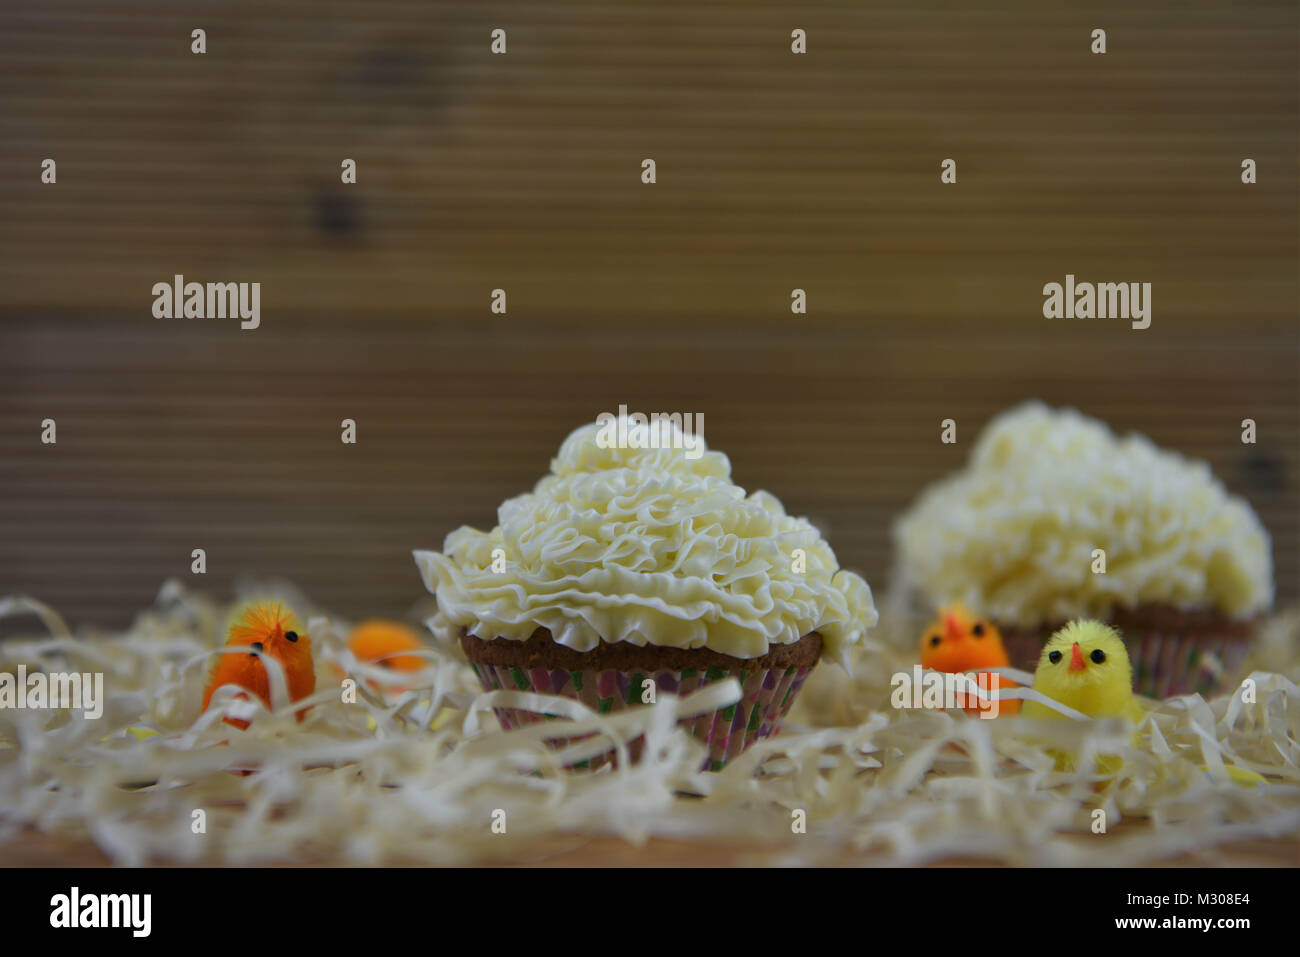 cute Easter time table with cupcake and on rustic wood with straw and fluffy chick decorations - Stock Image